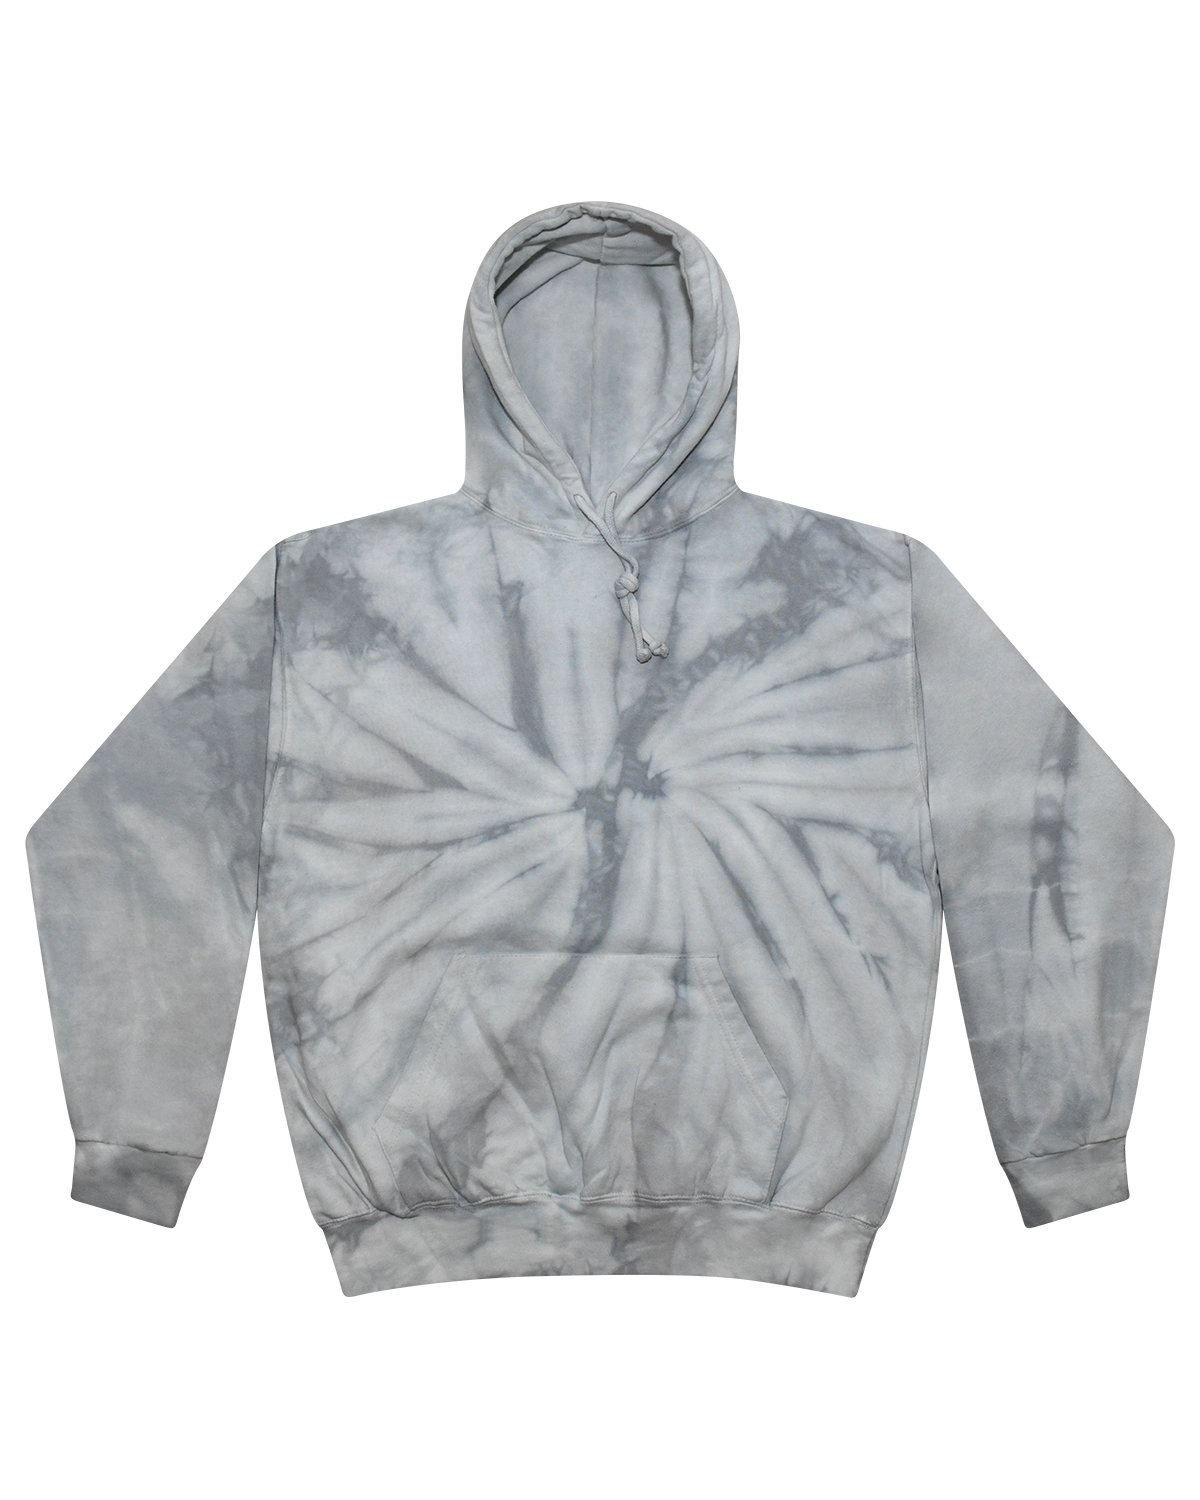 Tie-Dye Youth 8.5 oz. Tie-Dyed Pullover Hooded Sweatshirt SPIDER SILVER